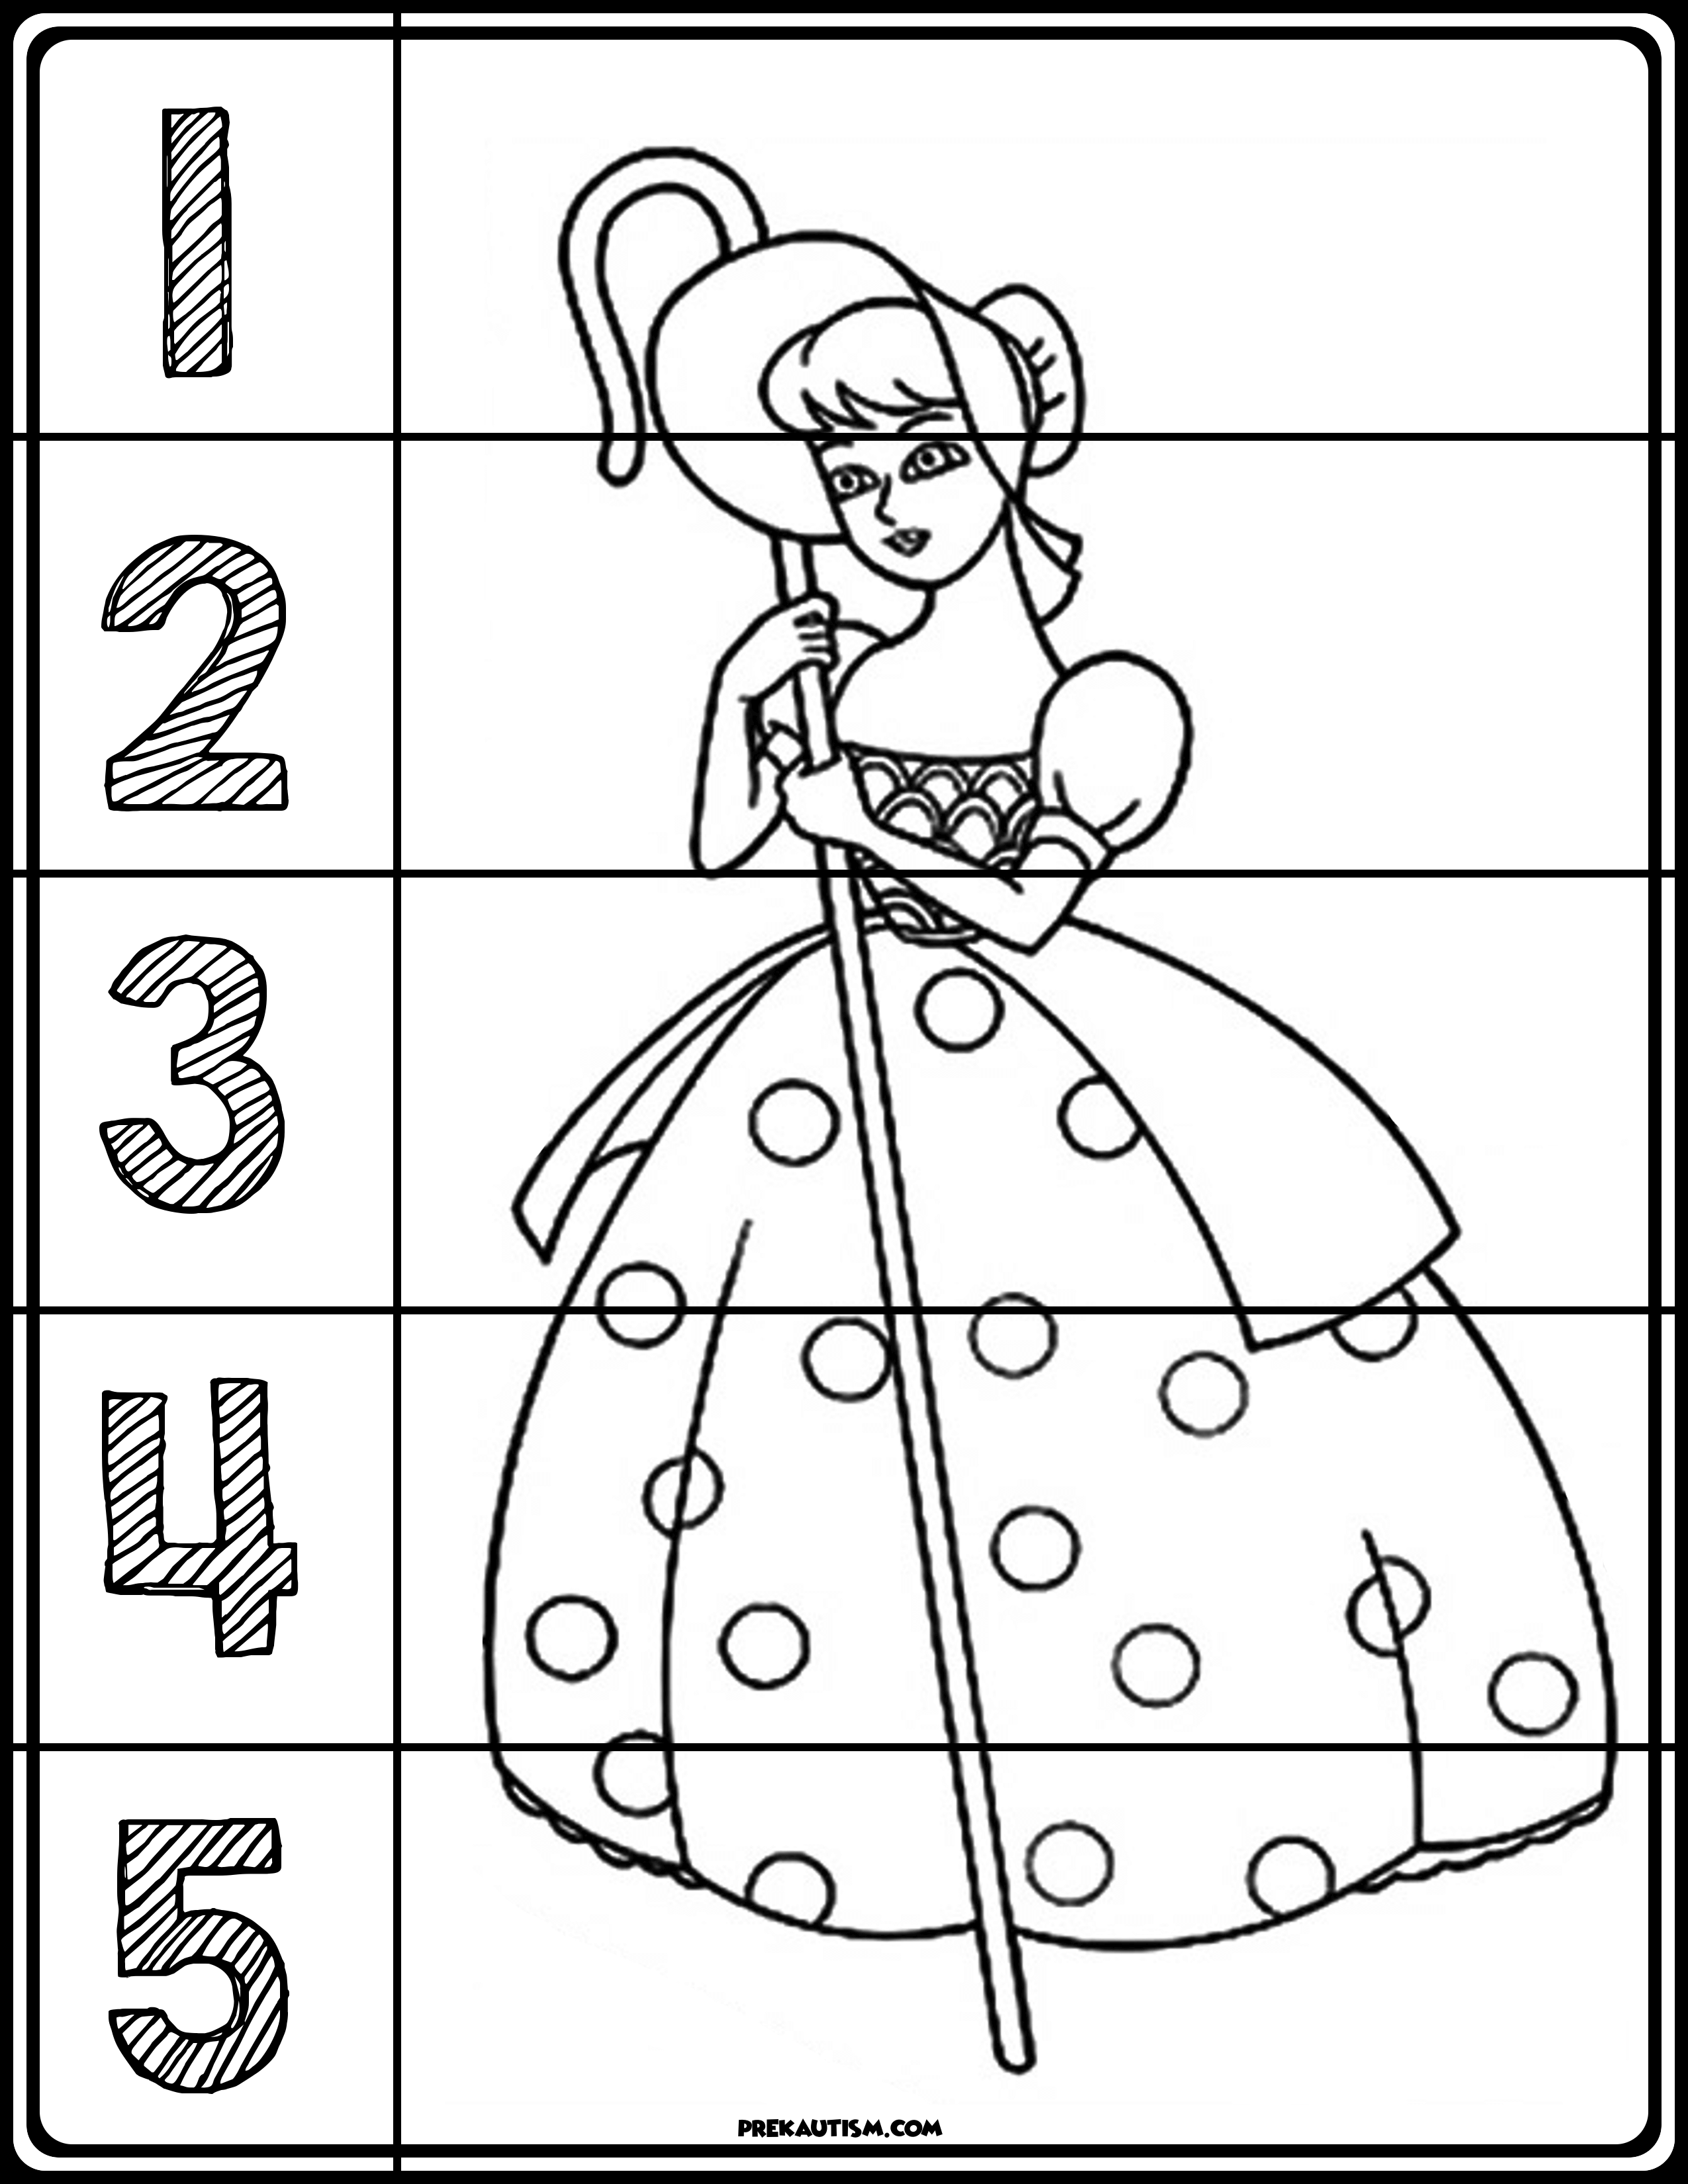 interactive toy story coloring pages - photo#2